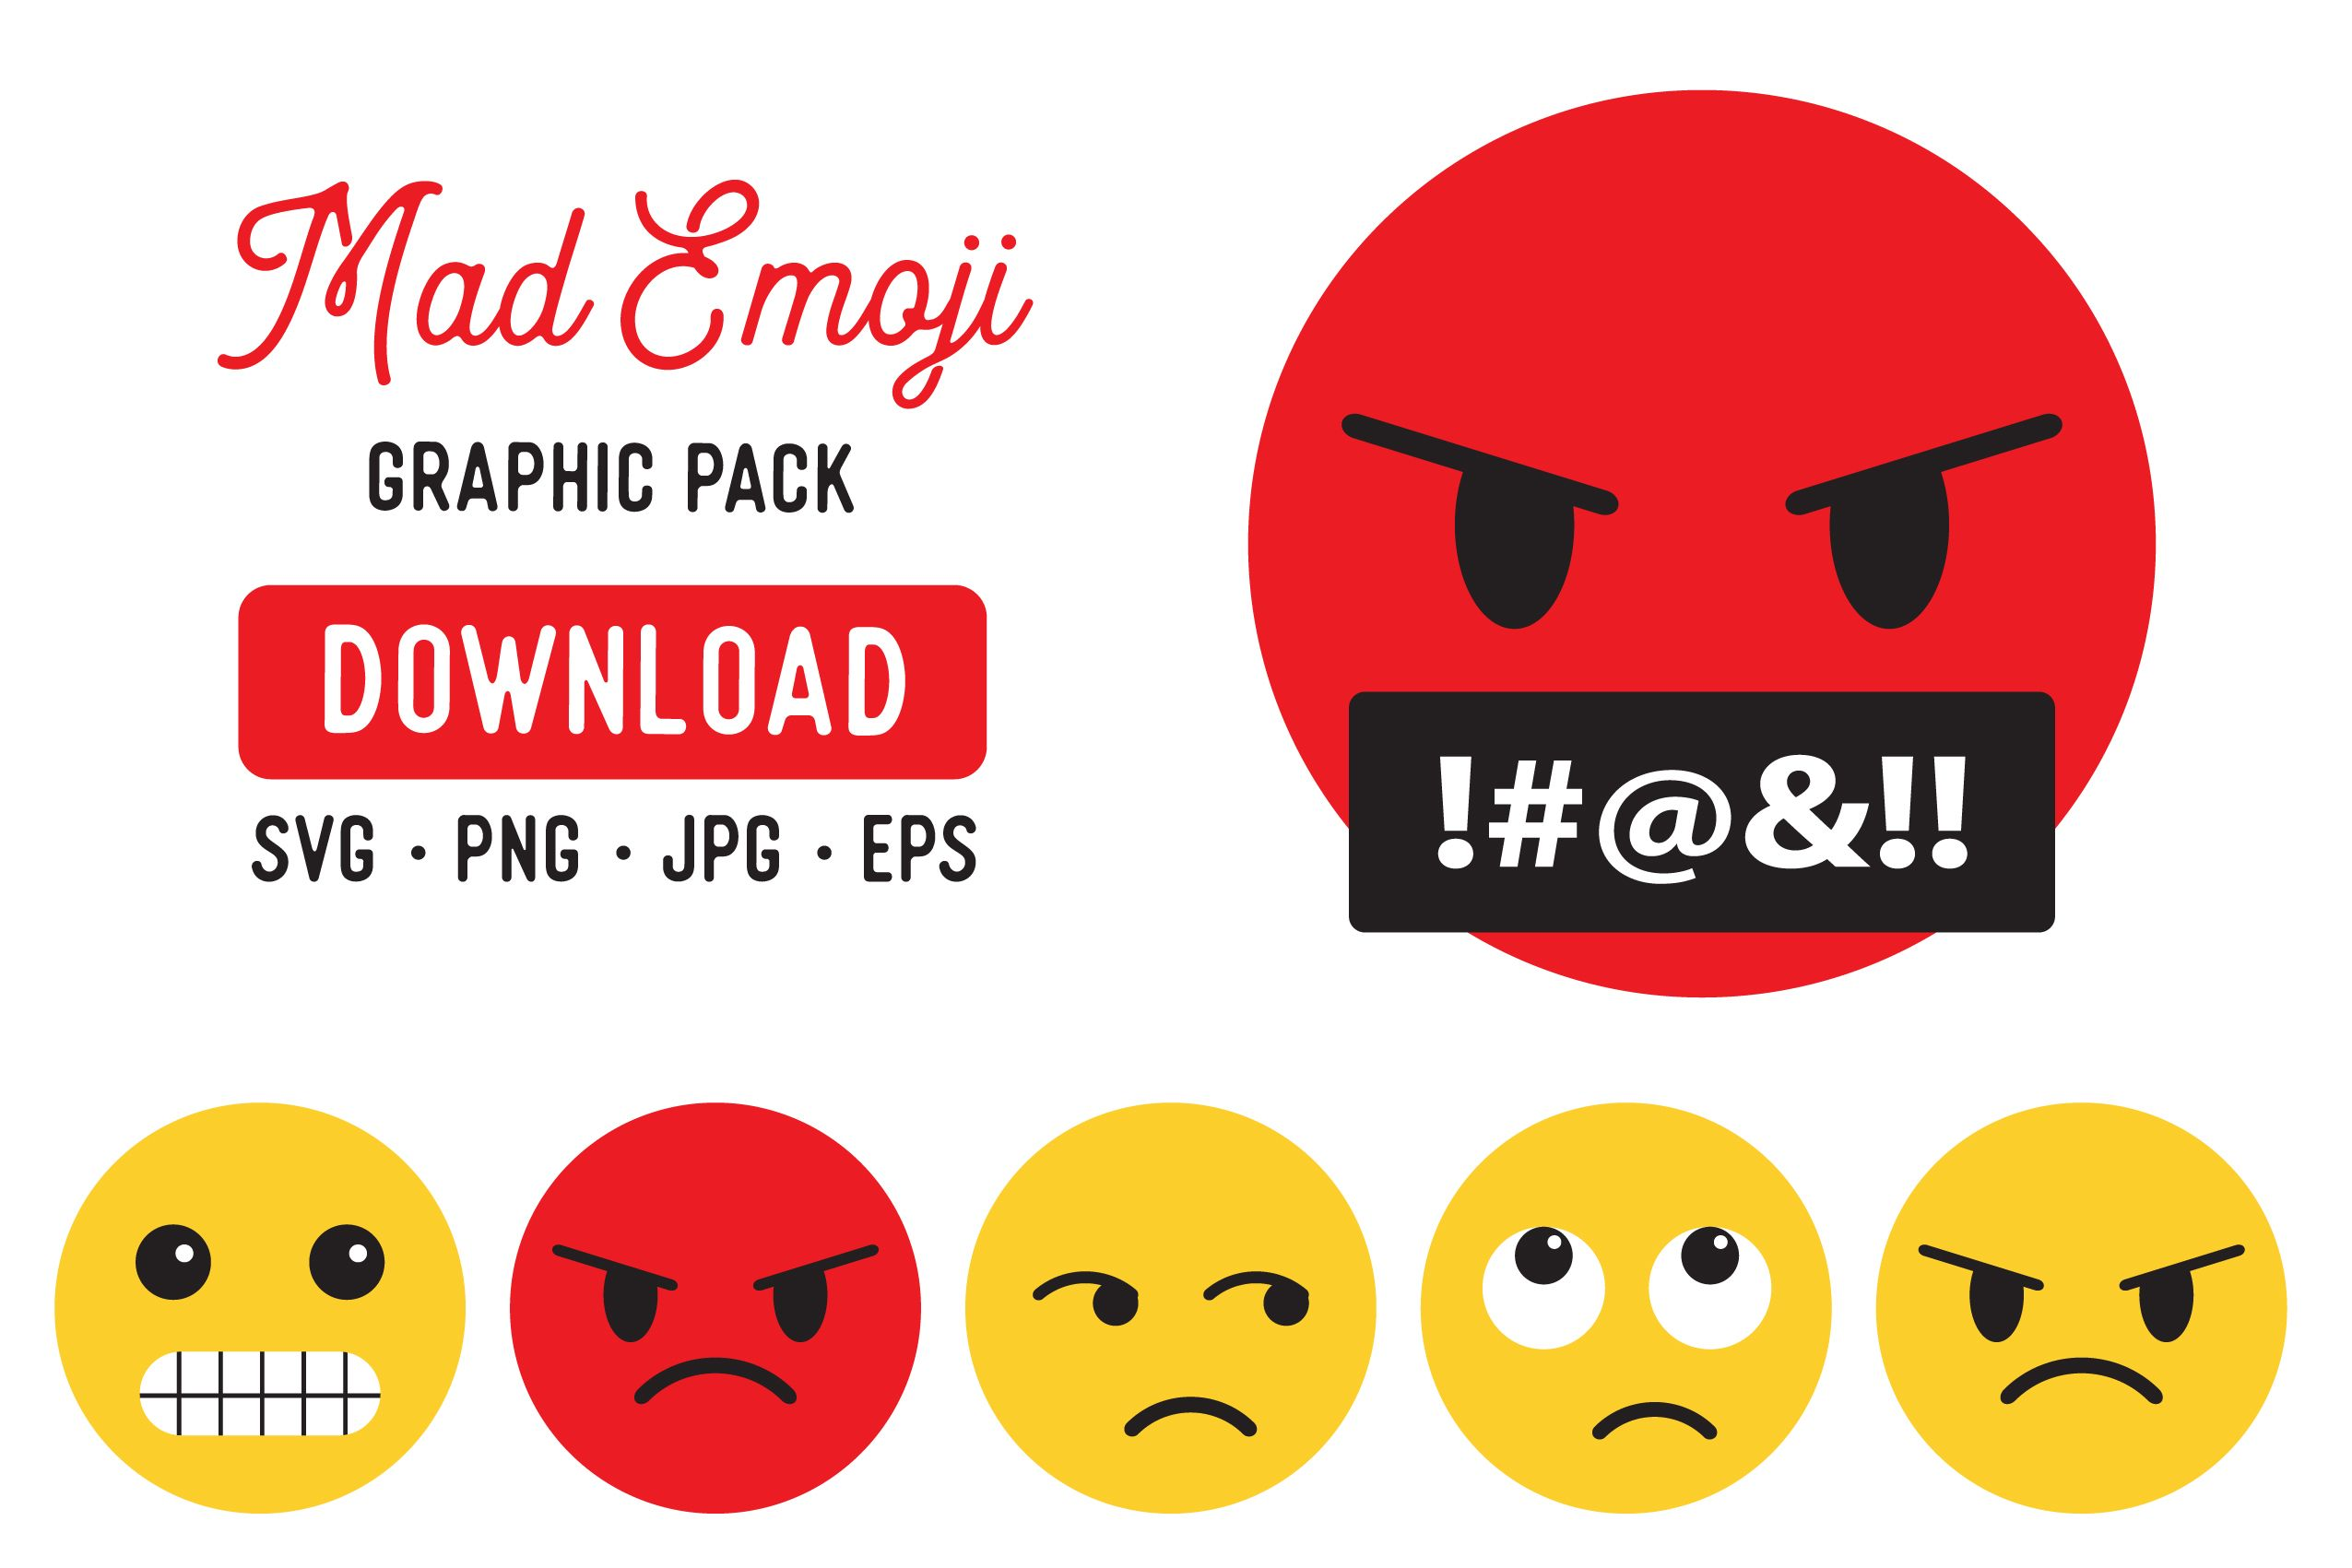 Angry Emoji Clipart Graphic Bundle Graphic By The Gradient Fox Creative Fabrica